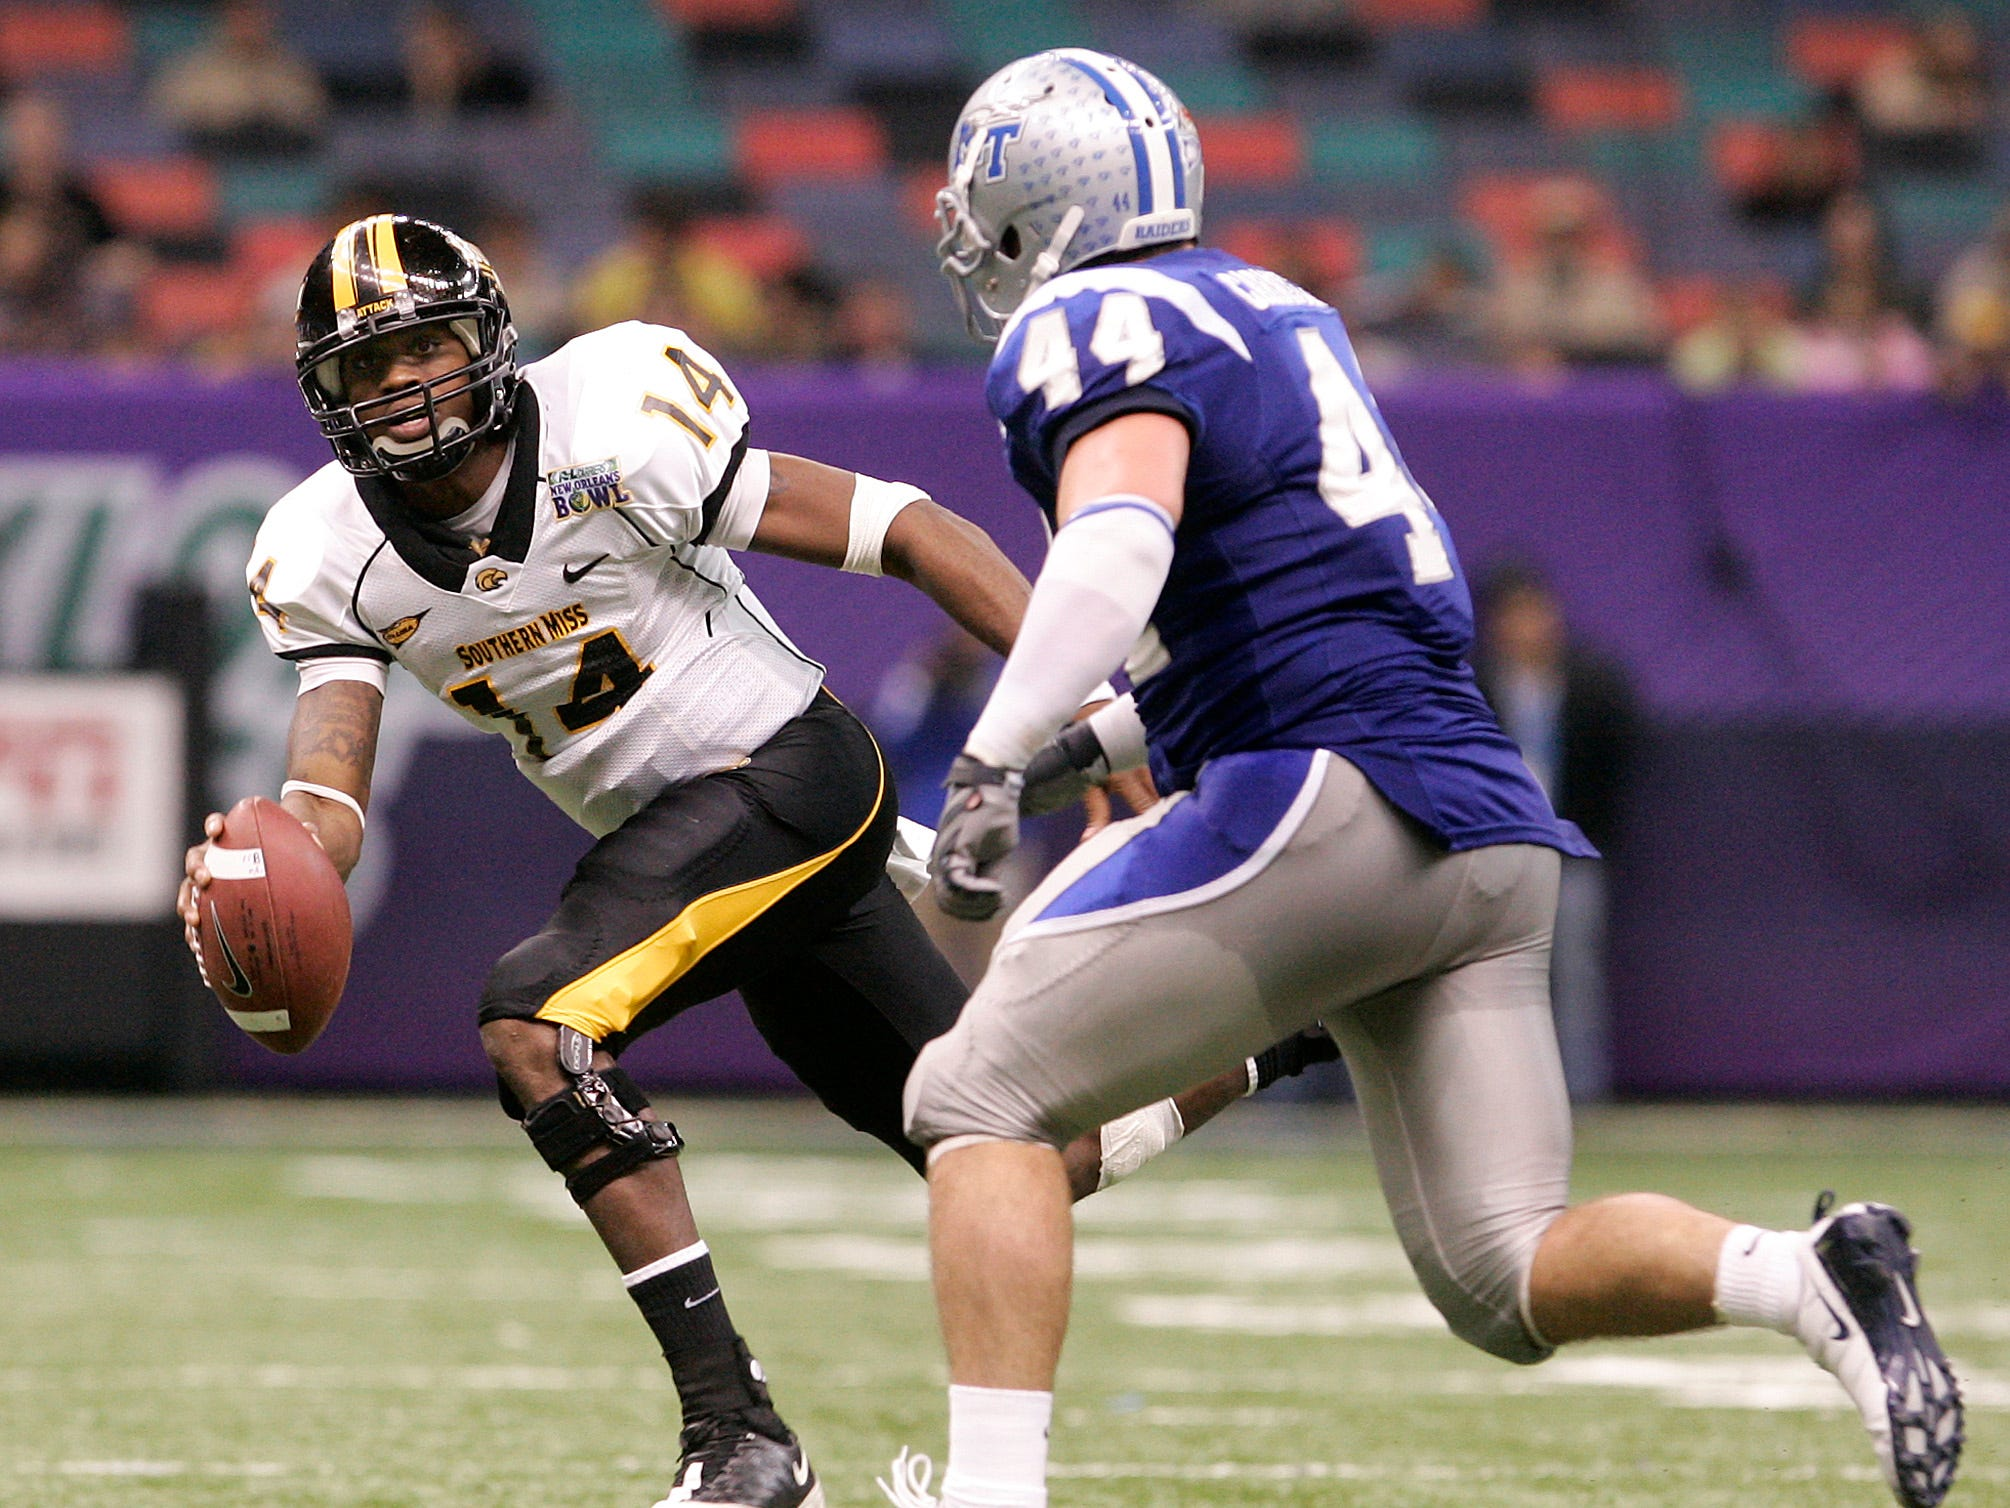 Southern Mississippi quarterback Martevious Young (14) is chased by MTSU linebacker Danny Carmichael (44) during the second half of the New Orleans Bowl on Dec. 20, 2009.